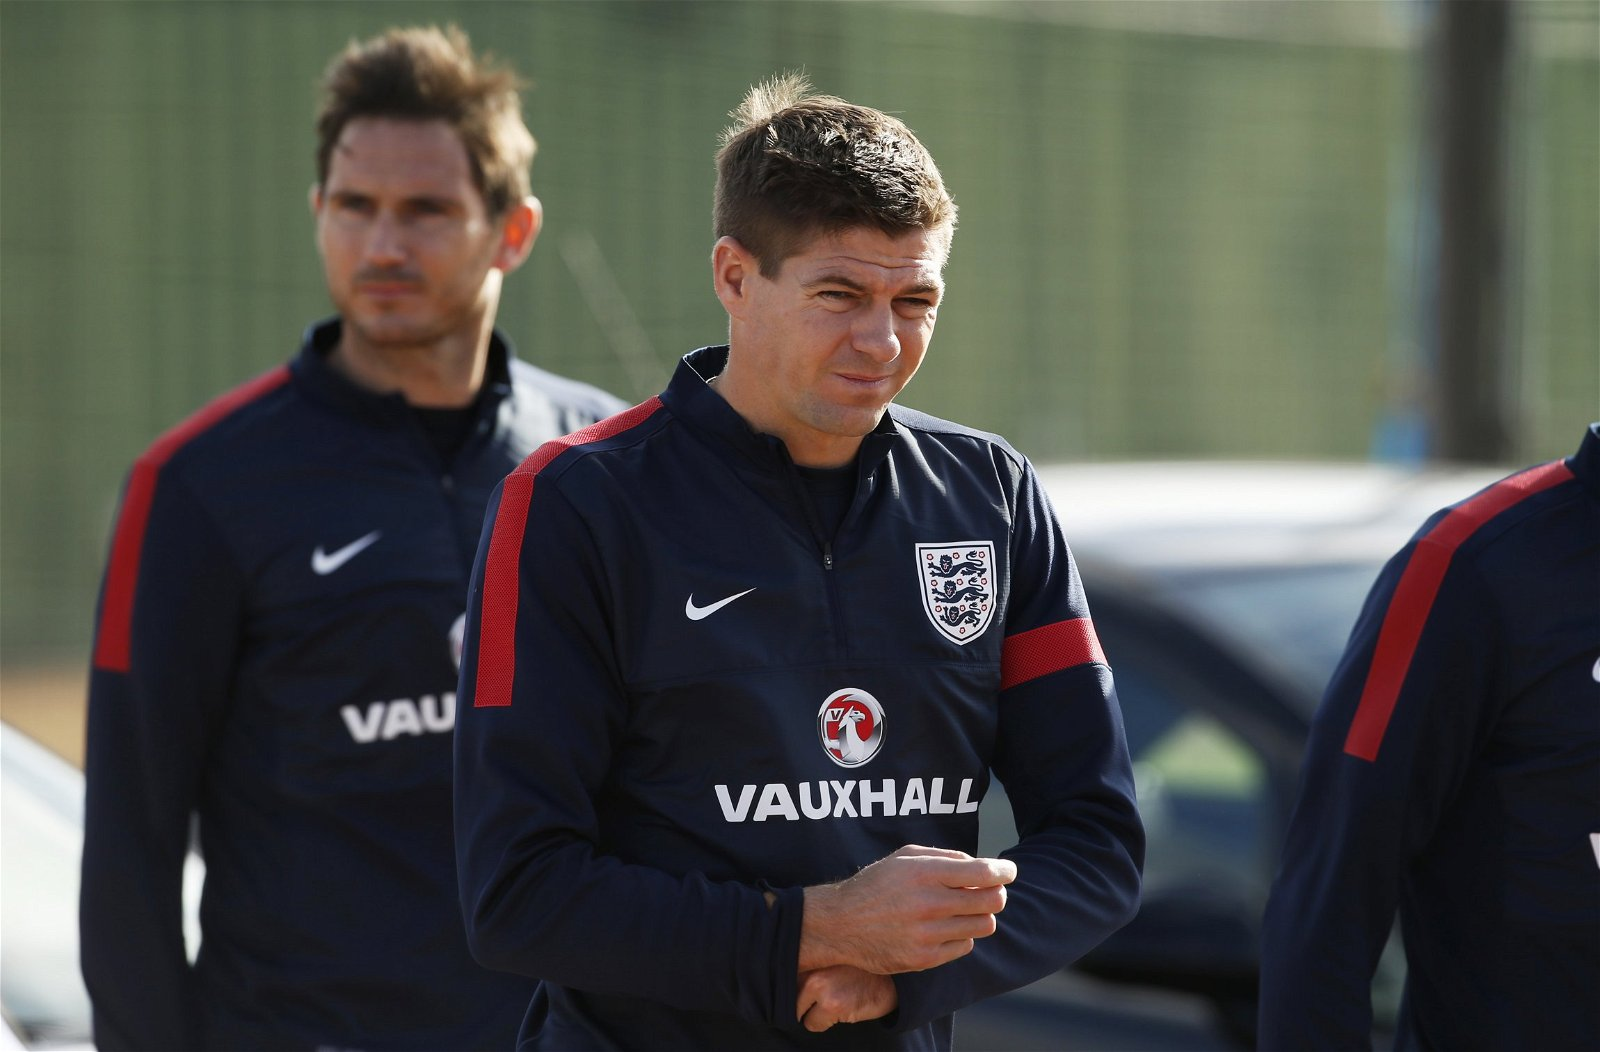 Steven Gerrard and Frank Lampard looks miserable in training